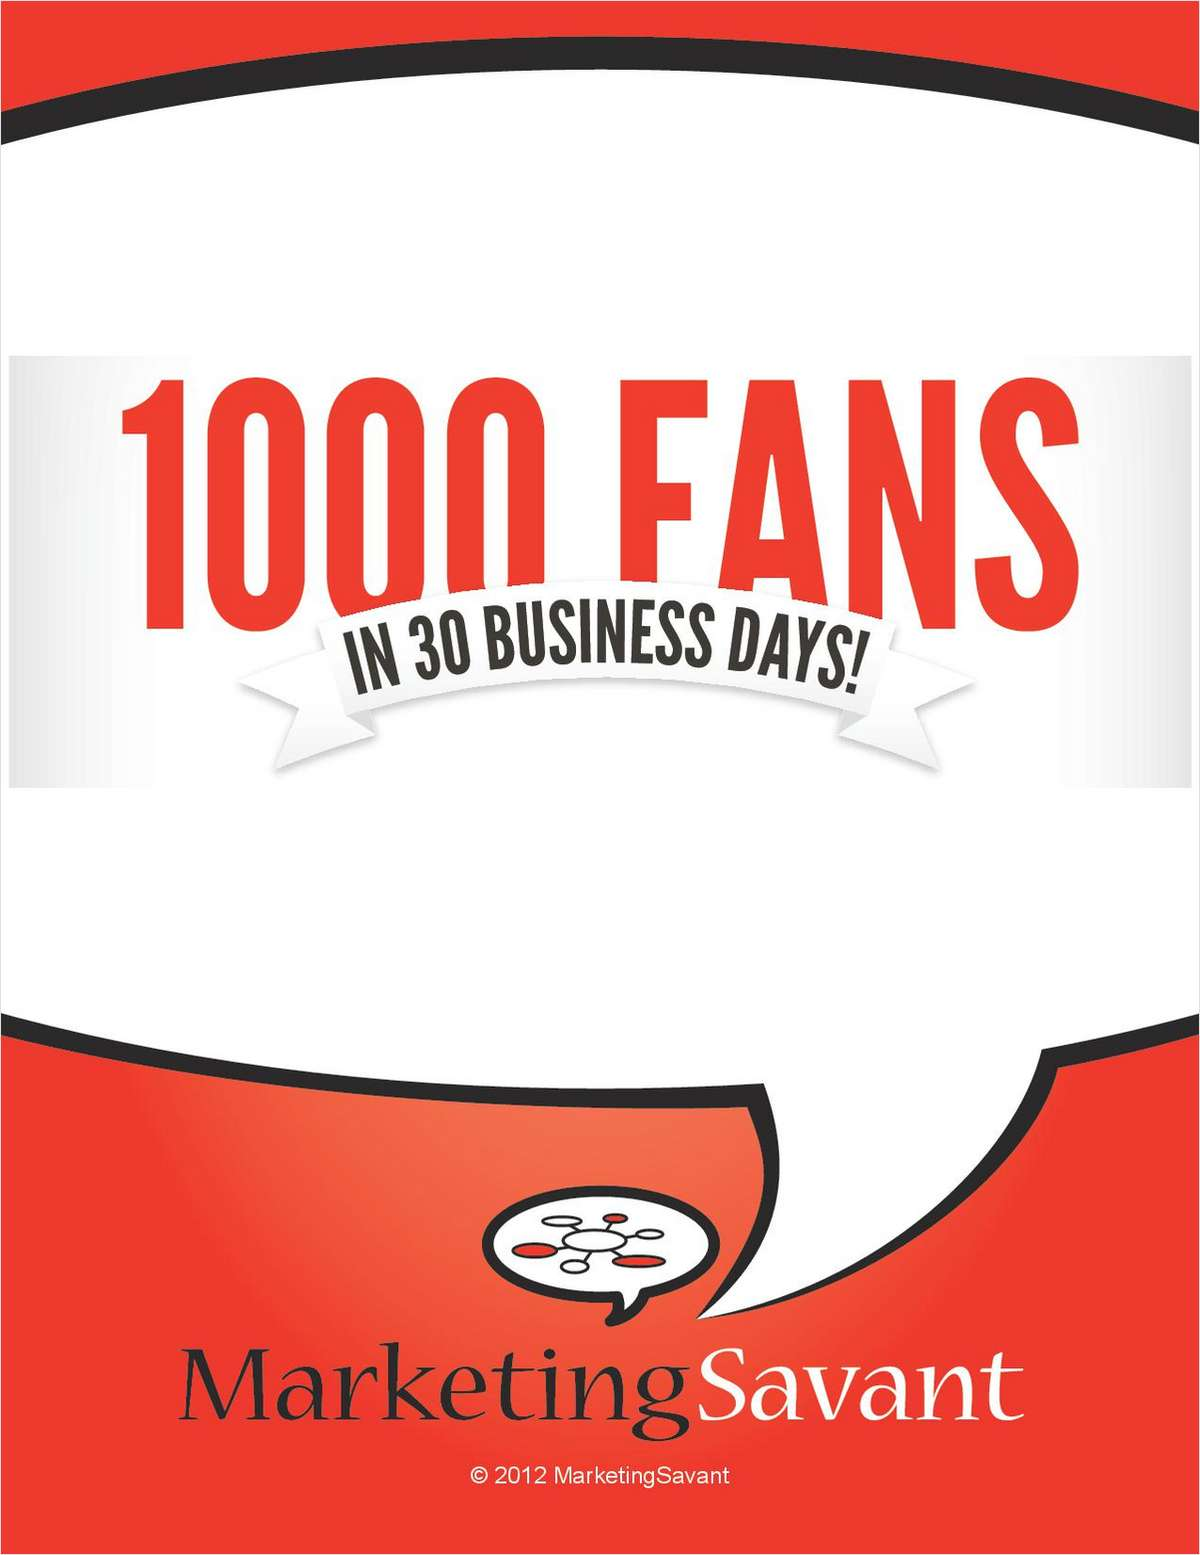 1000 Fans in 30 Business Days